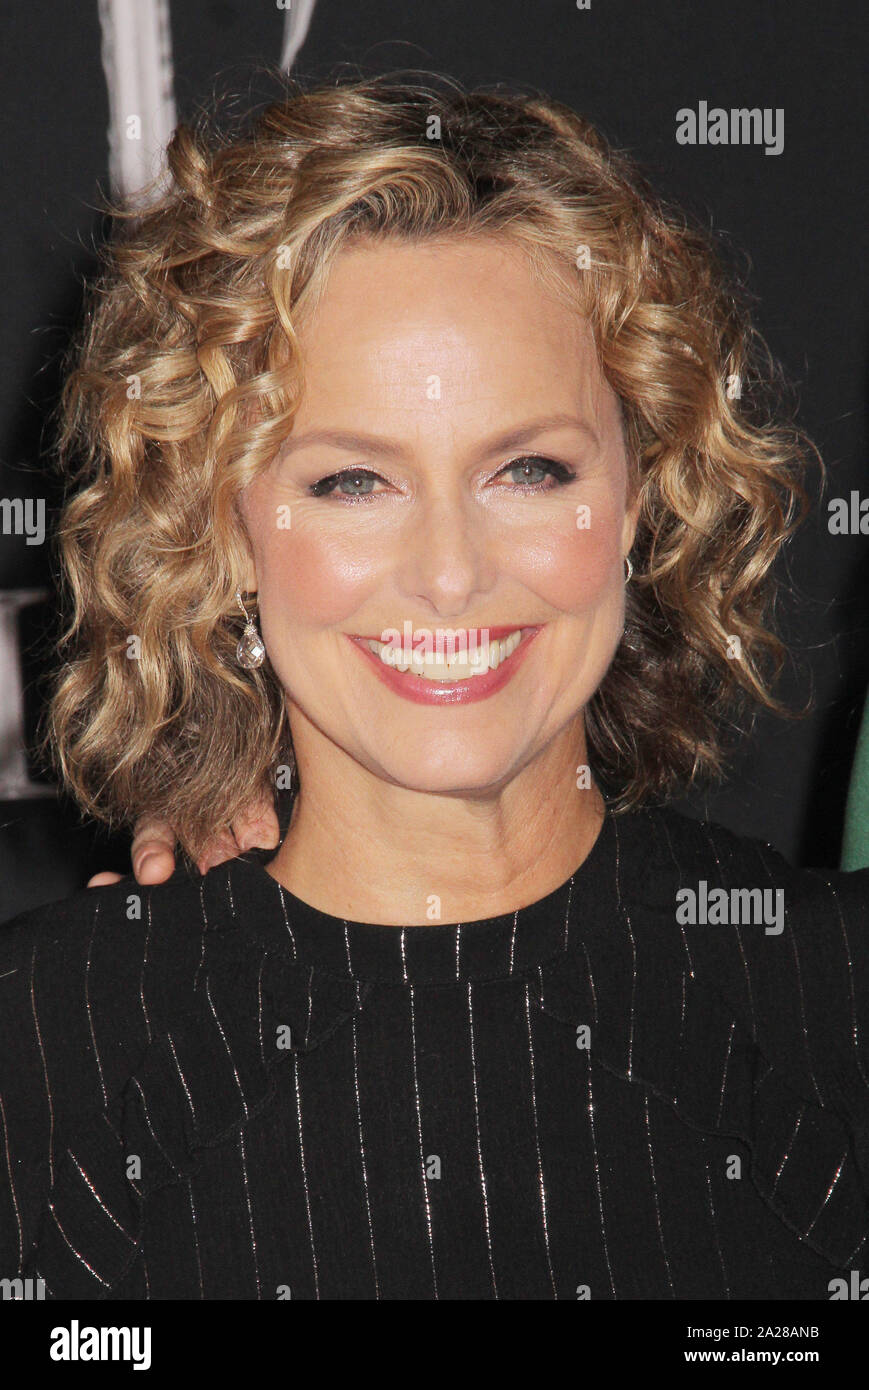 Melora Hardin 09 30 2019 The World Premiere Of Maleficent